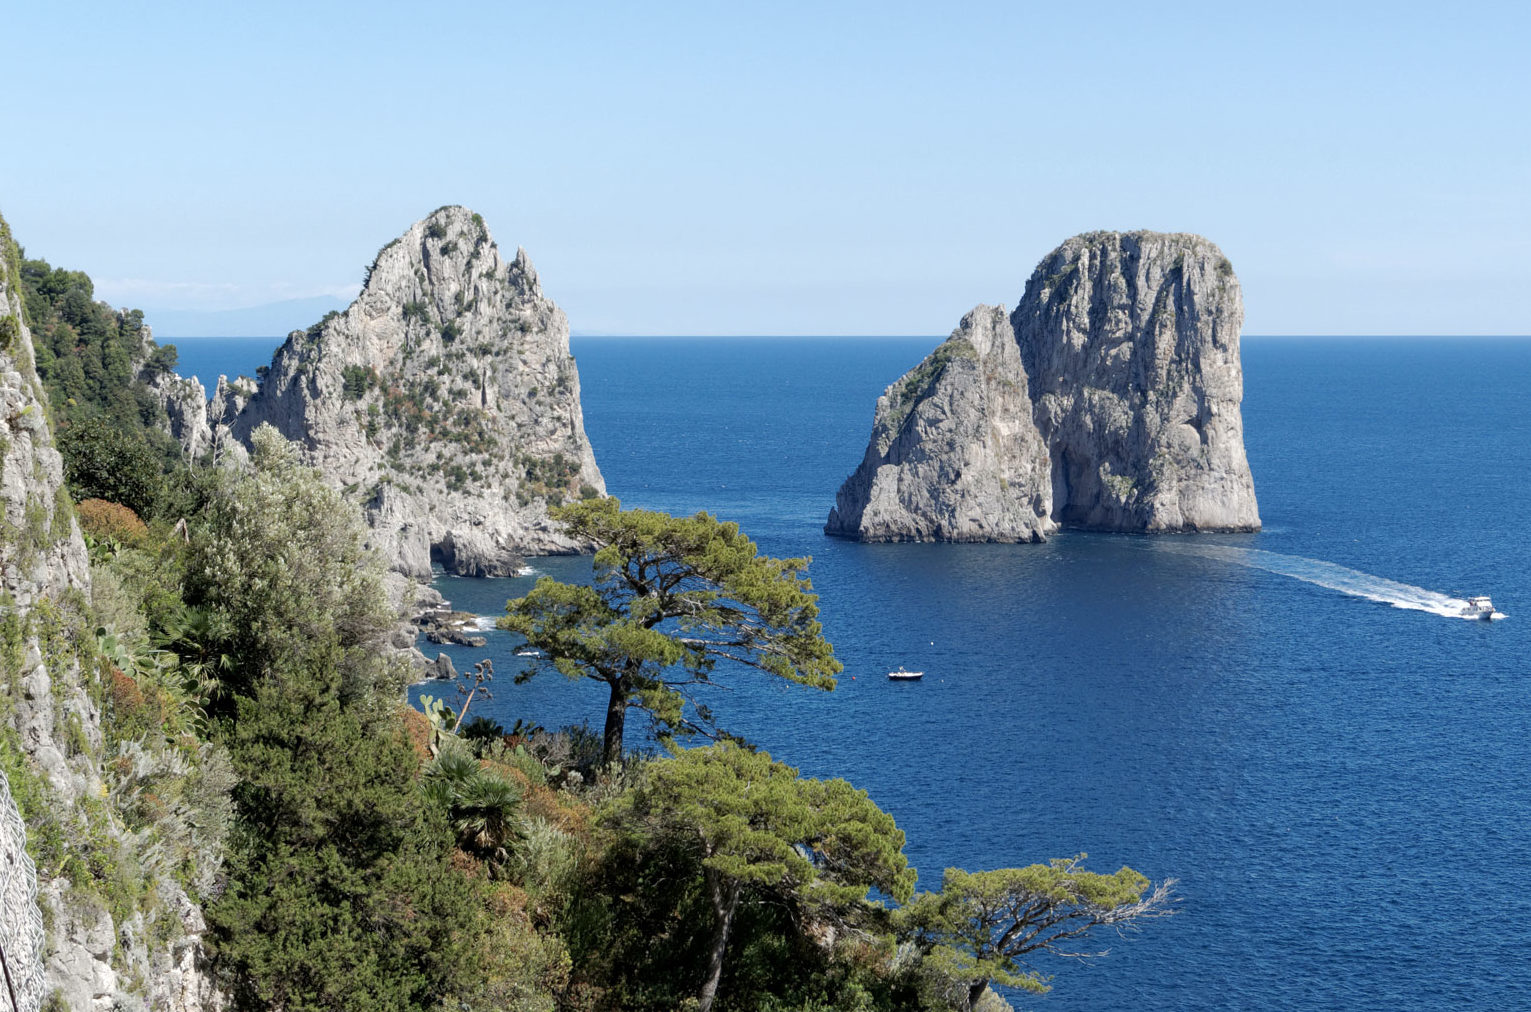 Hotel to discover Capri by boat!